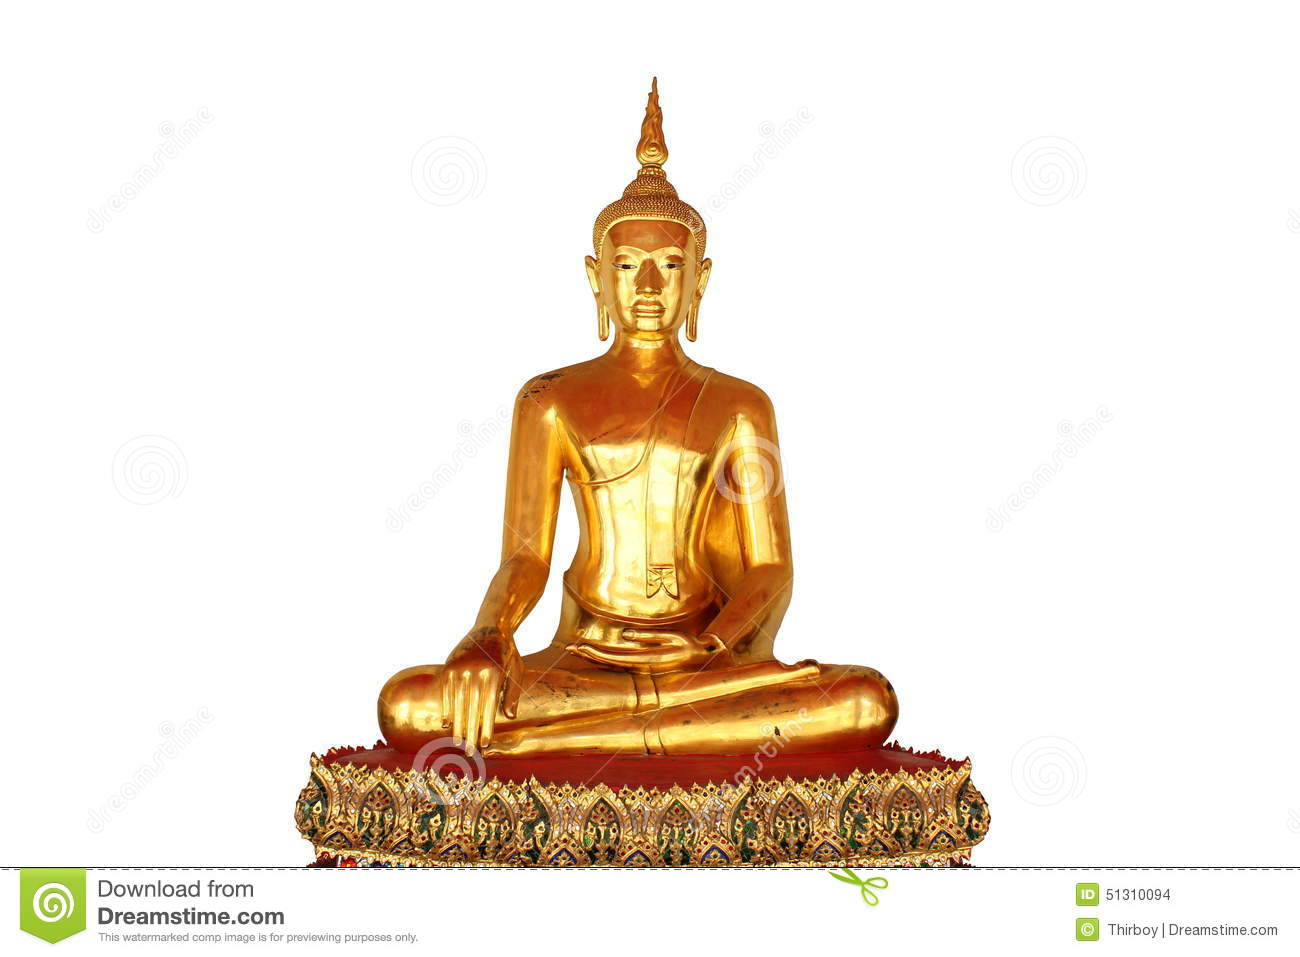 buddhist singles in wilkesville As a member of buddhist dating, your profile will automatically be shown on related buddhist dating sites or to related users in the online connections network at no additional charge for more information on how this works, click here.